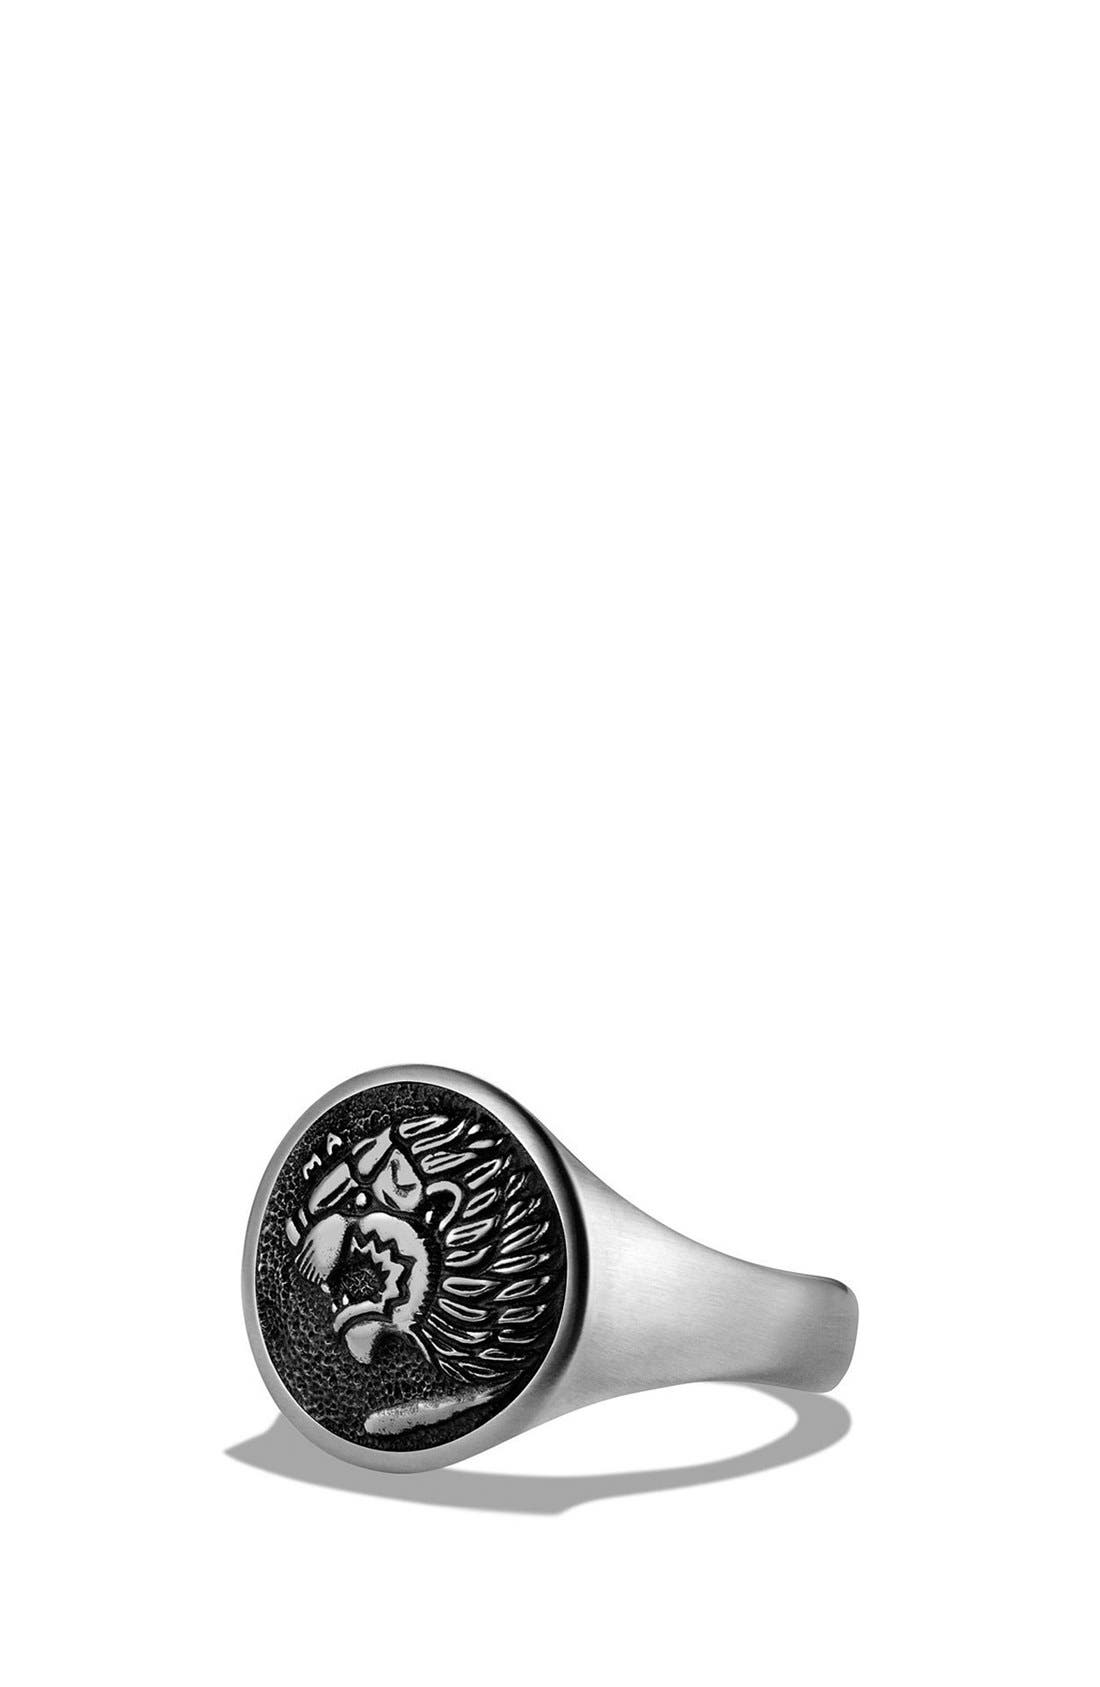 David Yurman 'Petrvs' Lion Signet Pinky Ring